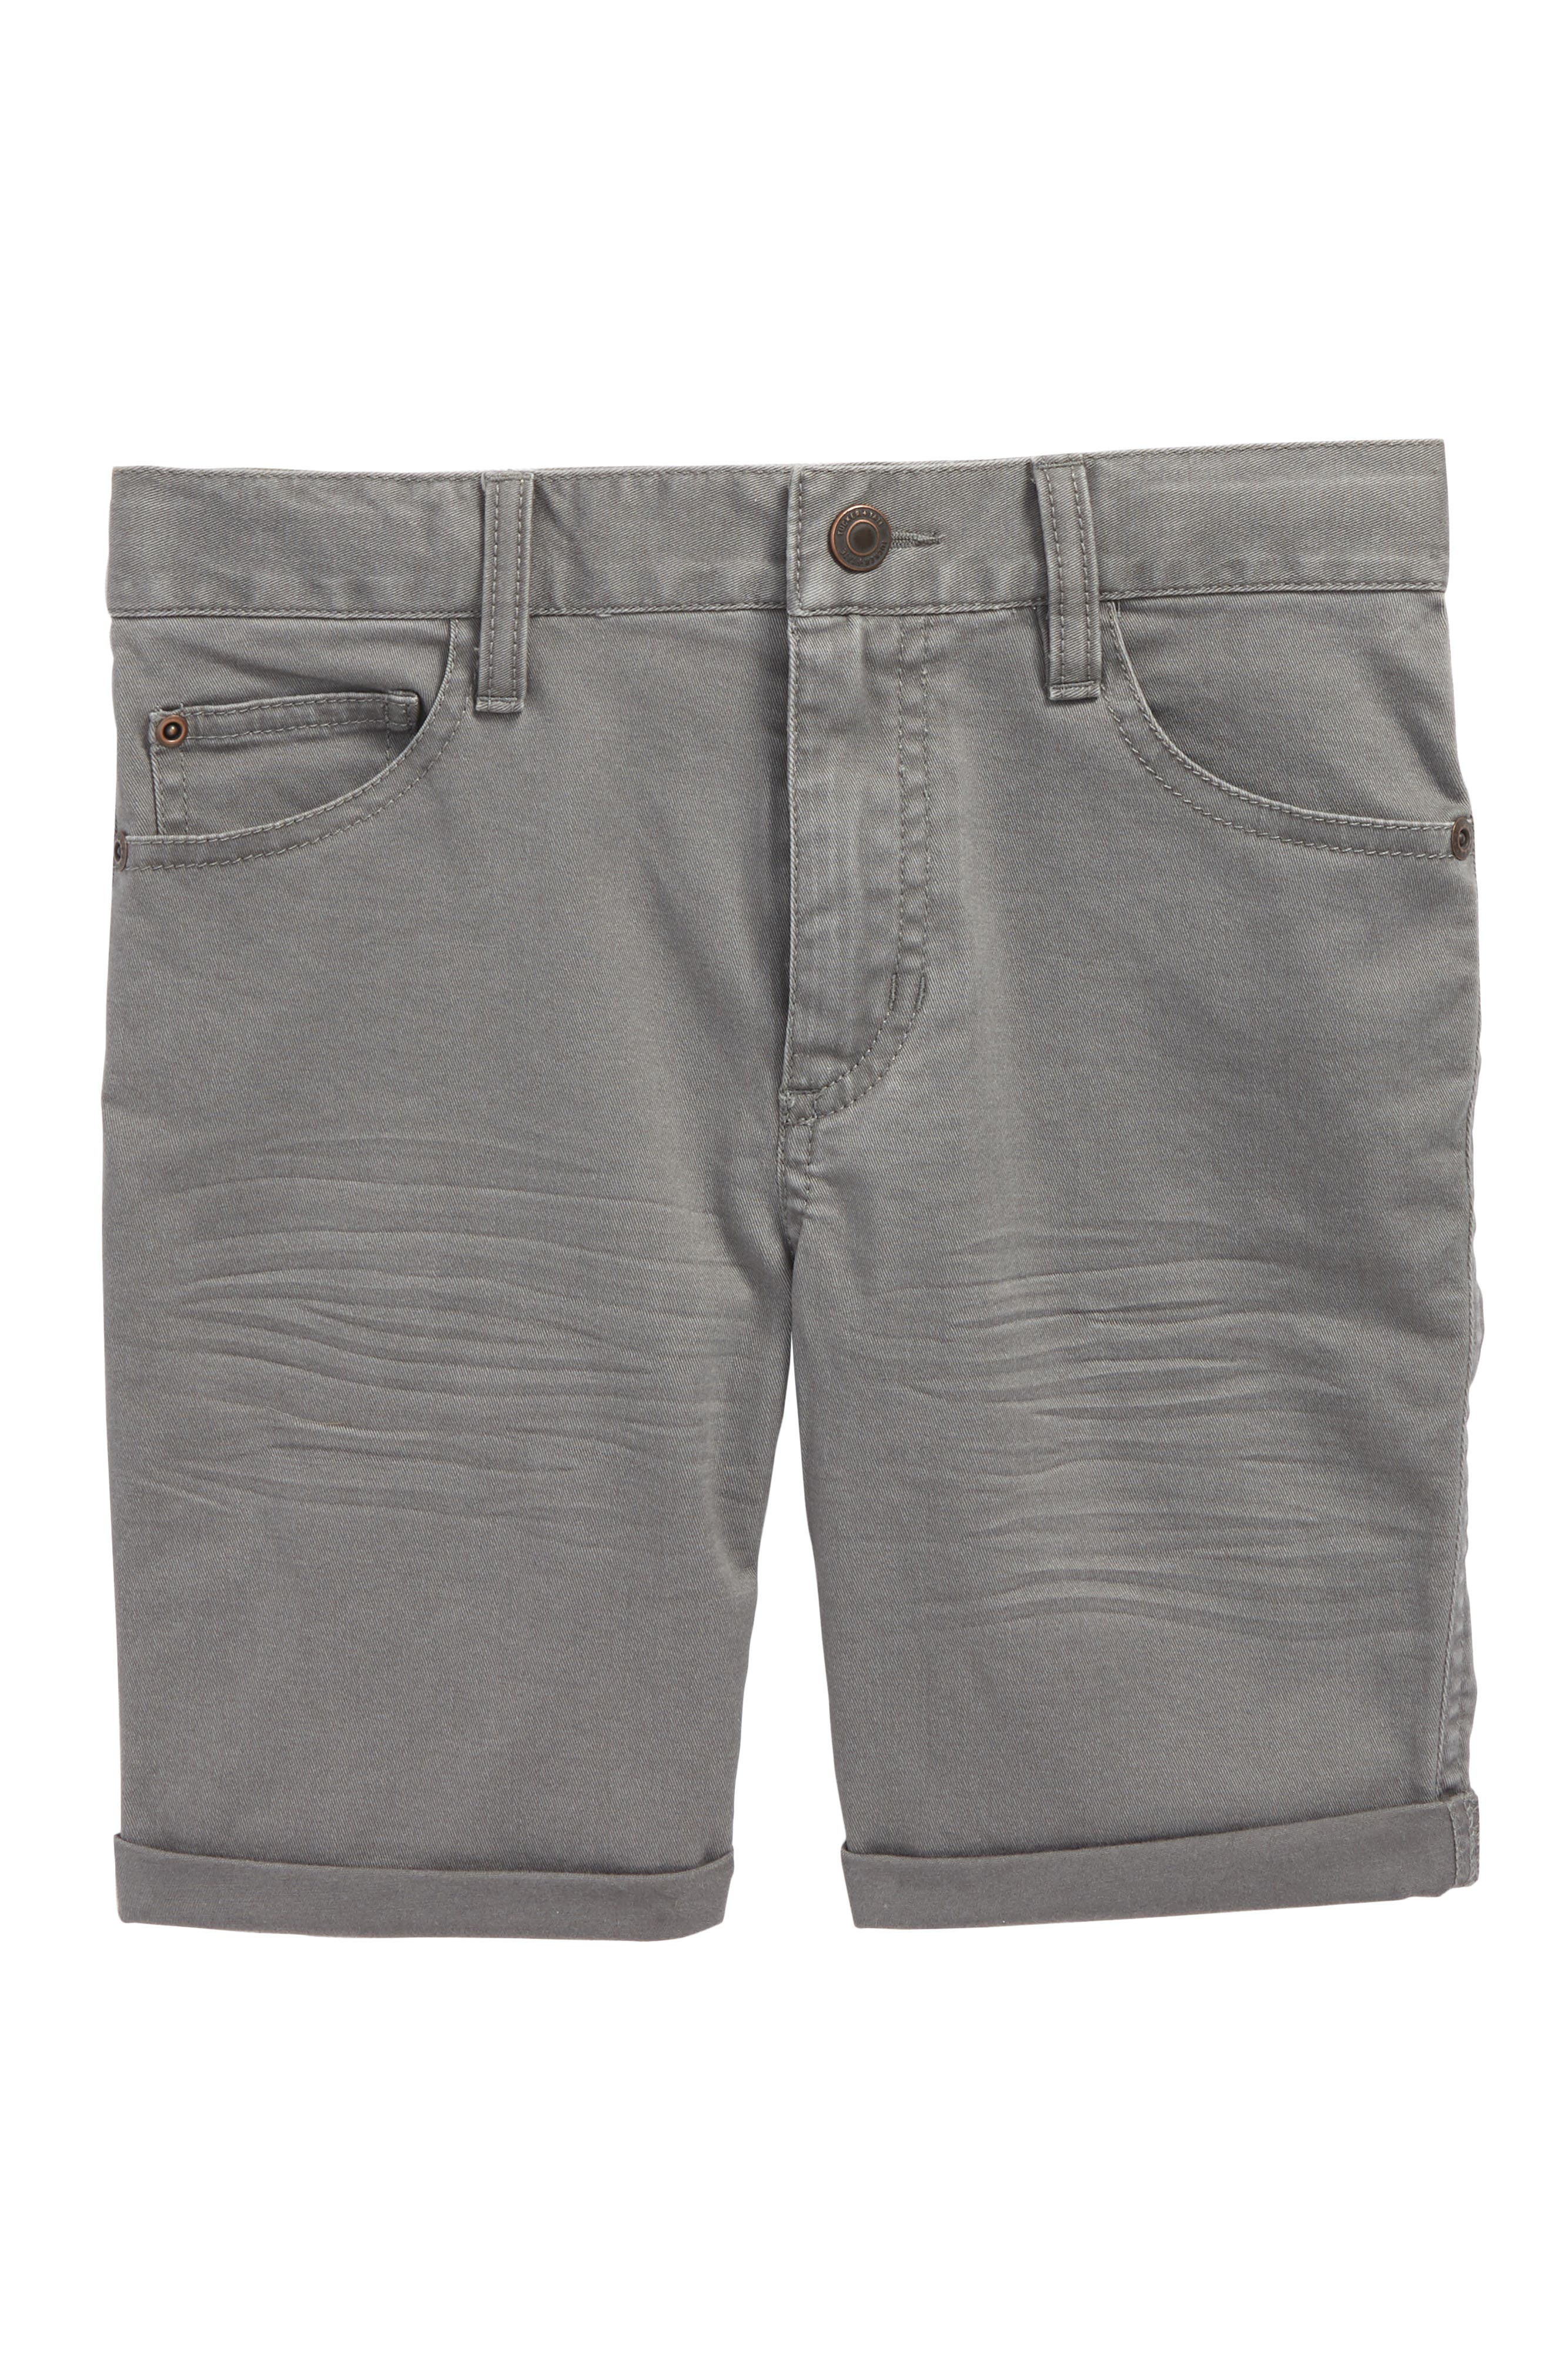 Stretch Twill Shorts,                             Main thumbnail 1, color,                             021